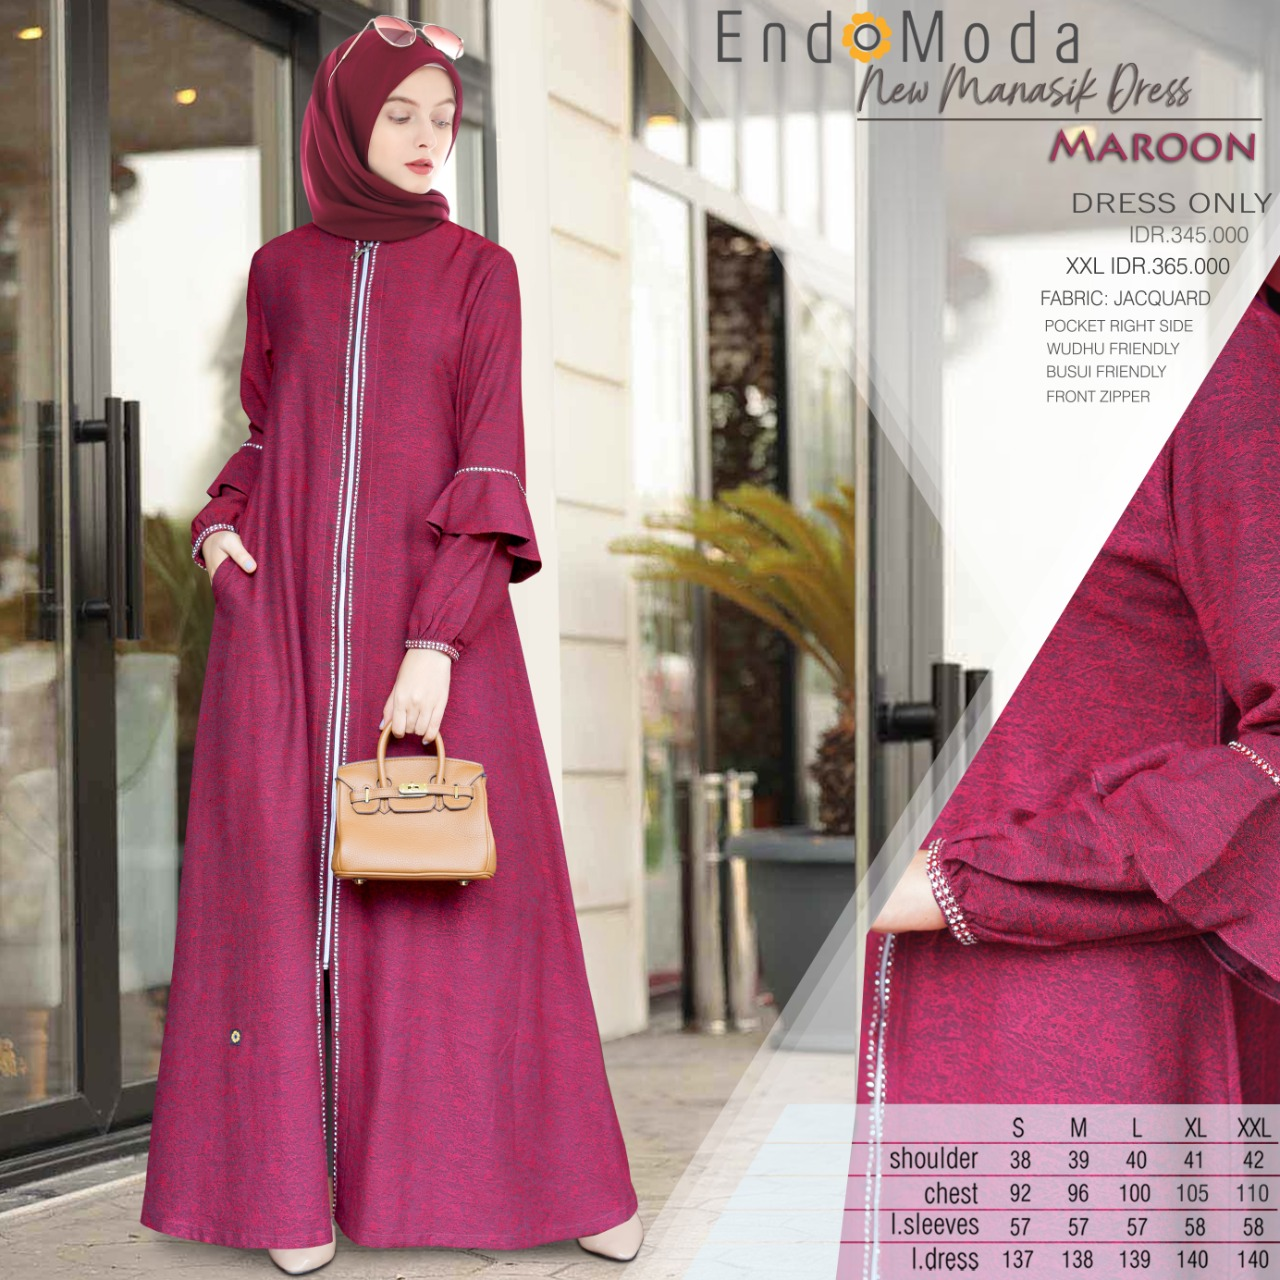 Gamis Endomoda New Manasik Dress Maroon